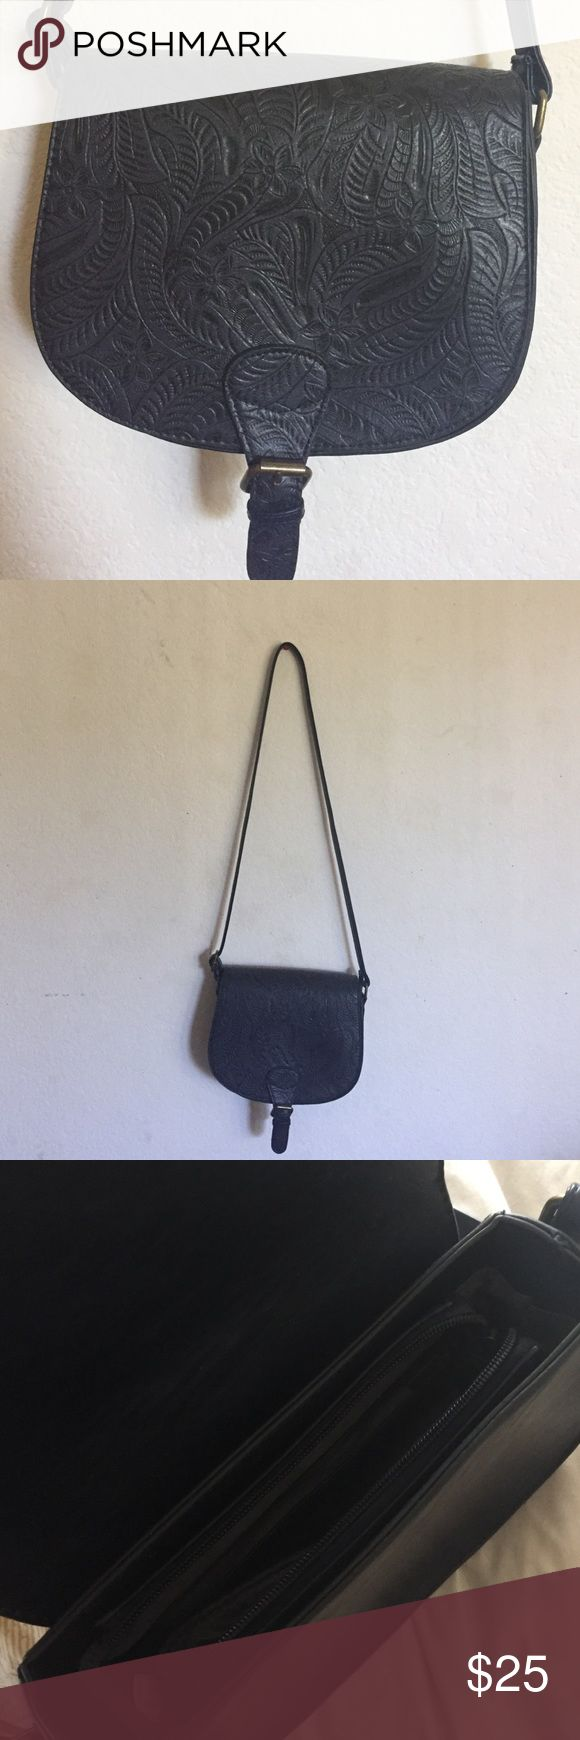 Vegan Free People purse Vegan Purse by Free People. Brand new without tags. Navy blue. Free People Bags Satchels